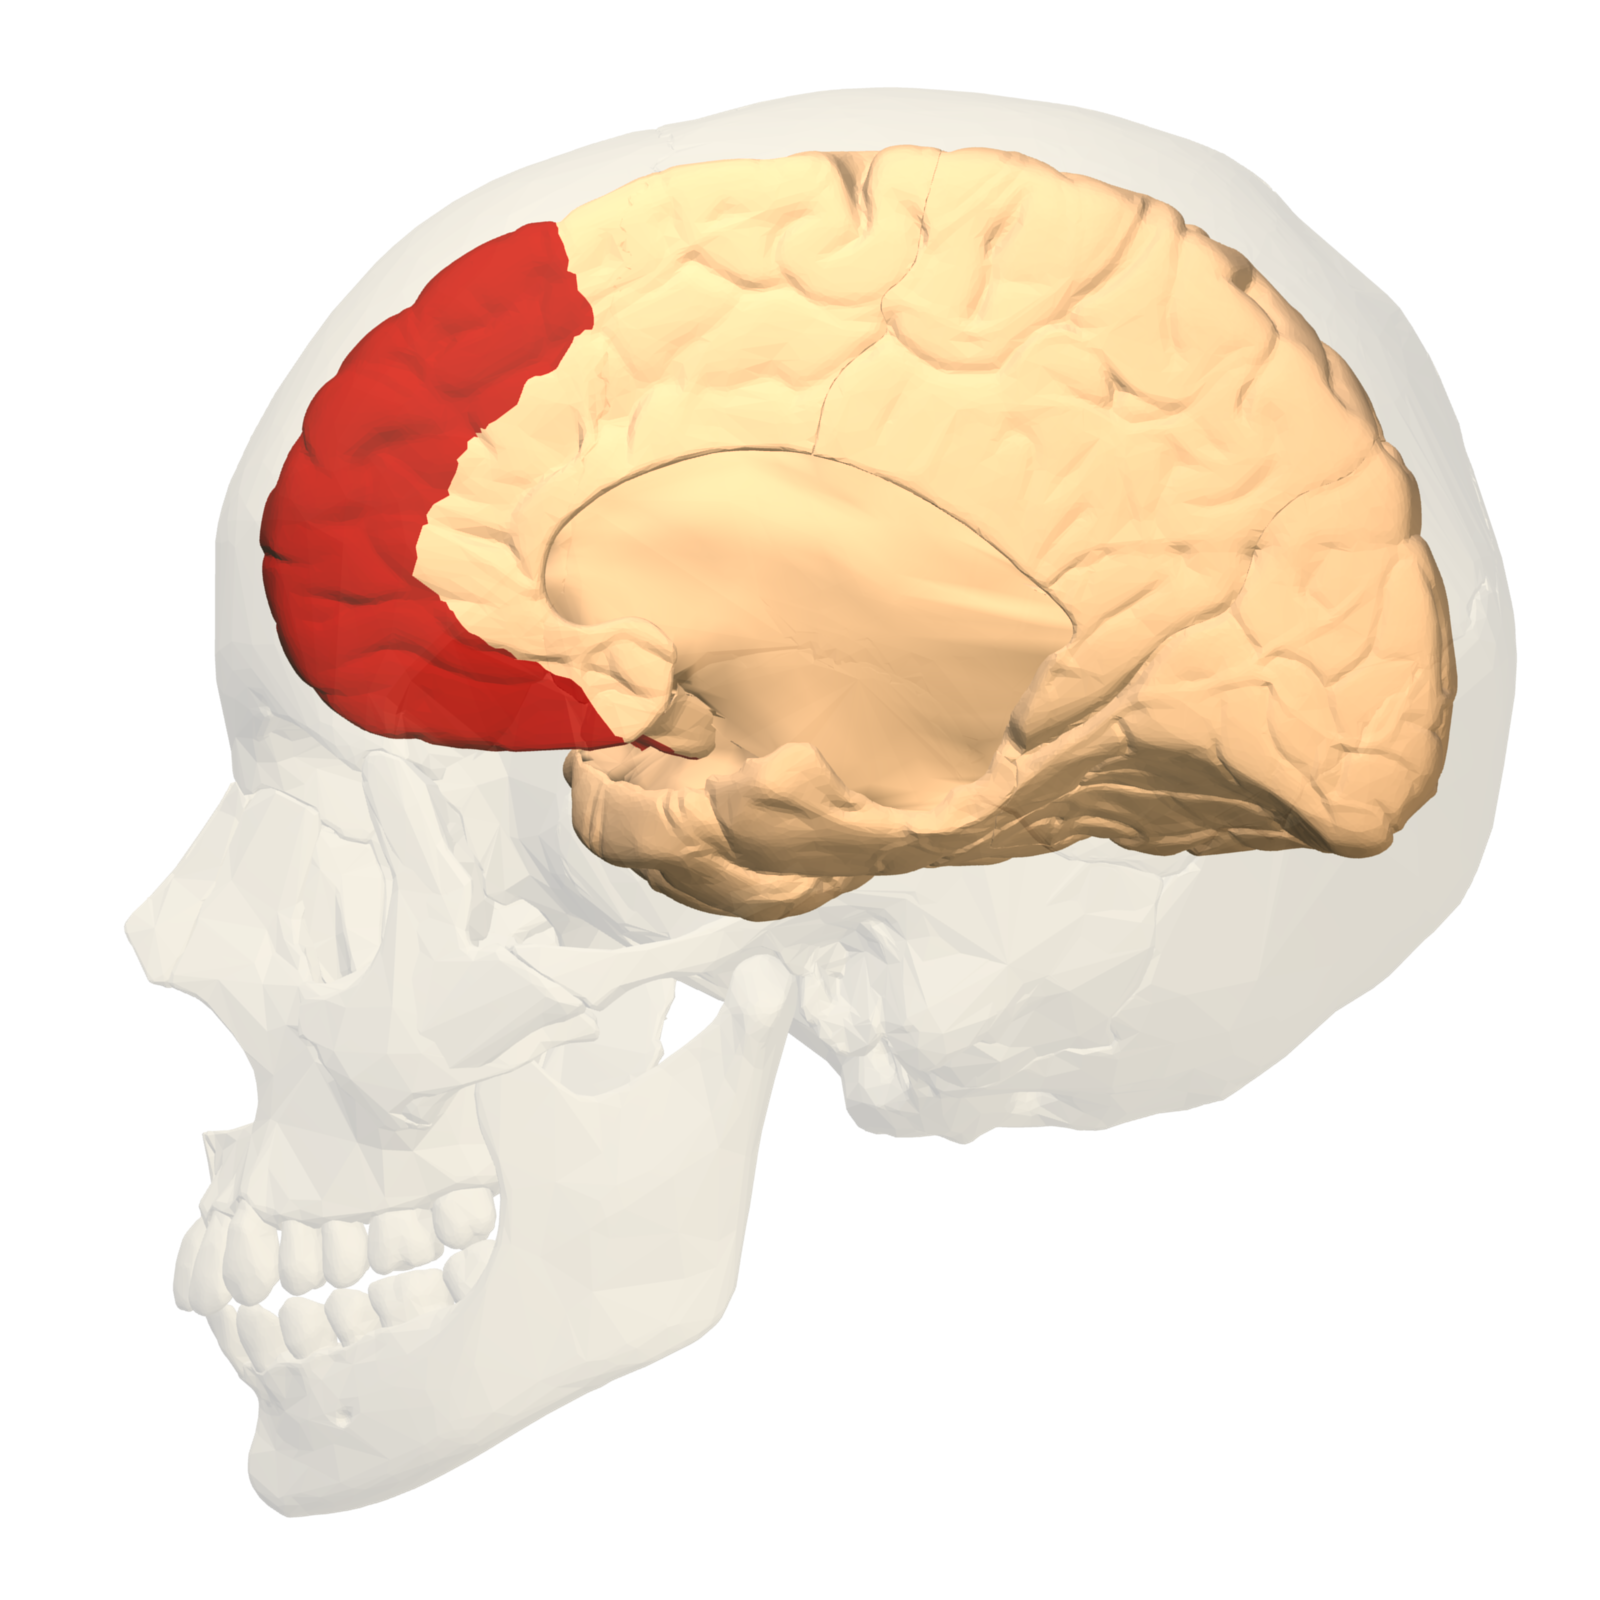 file prefrontal cortex left medial view png wikimedia commons